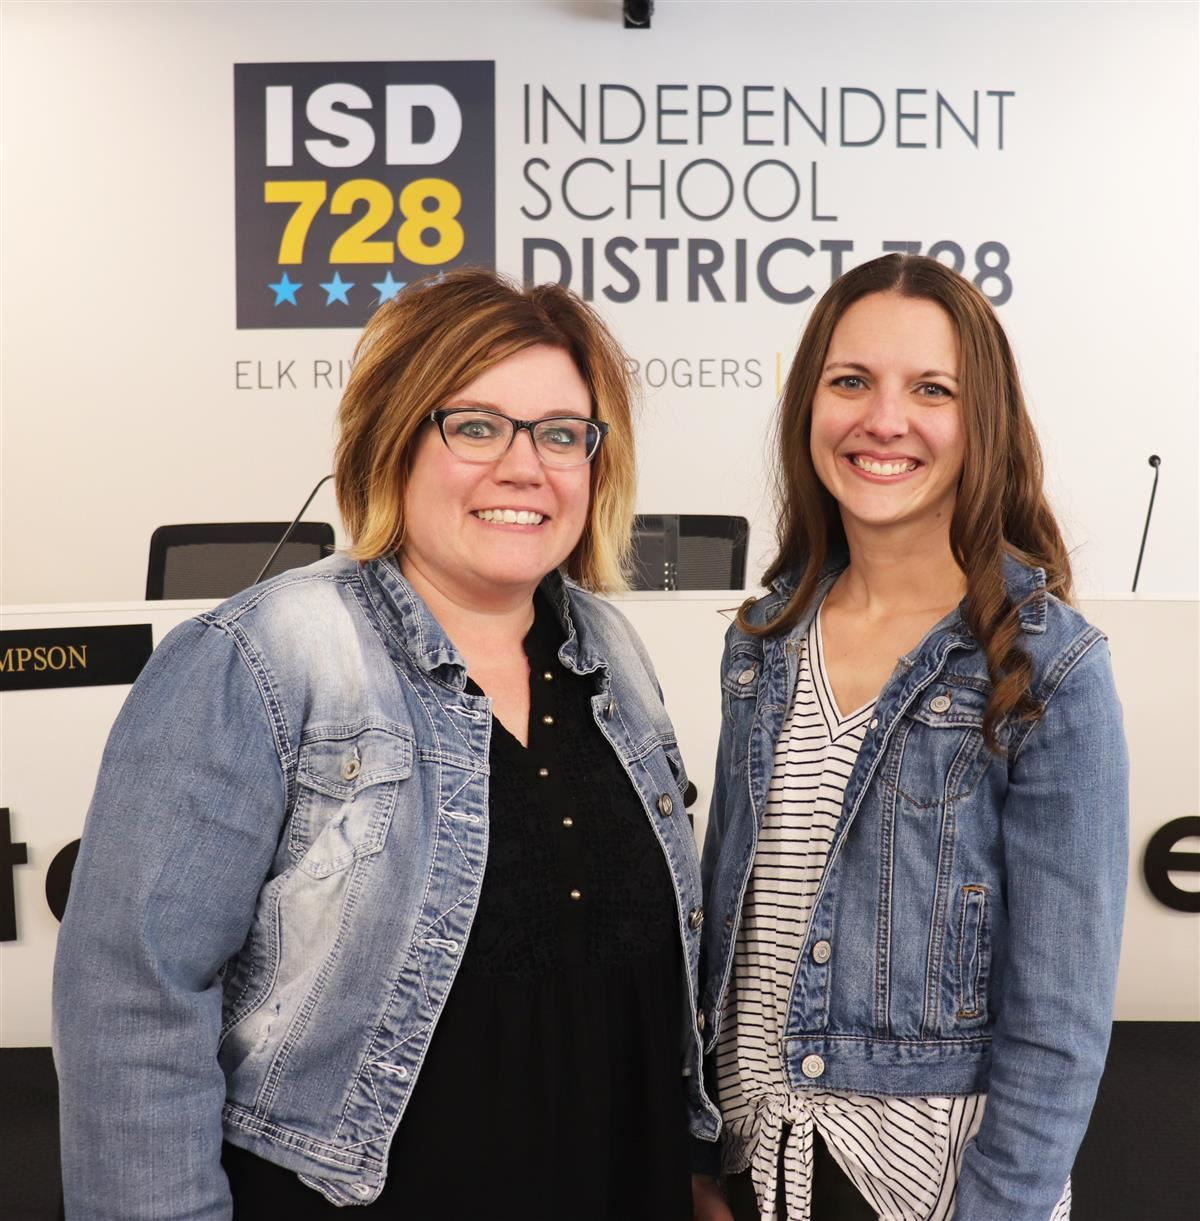 Two ISD 728 Educators Named Semi-Finalists for Teacher of the Year